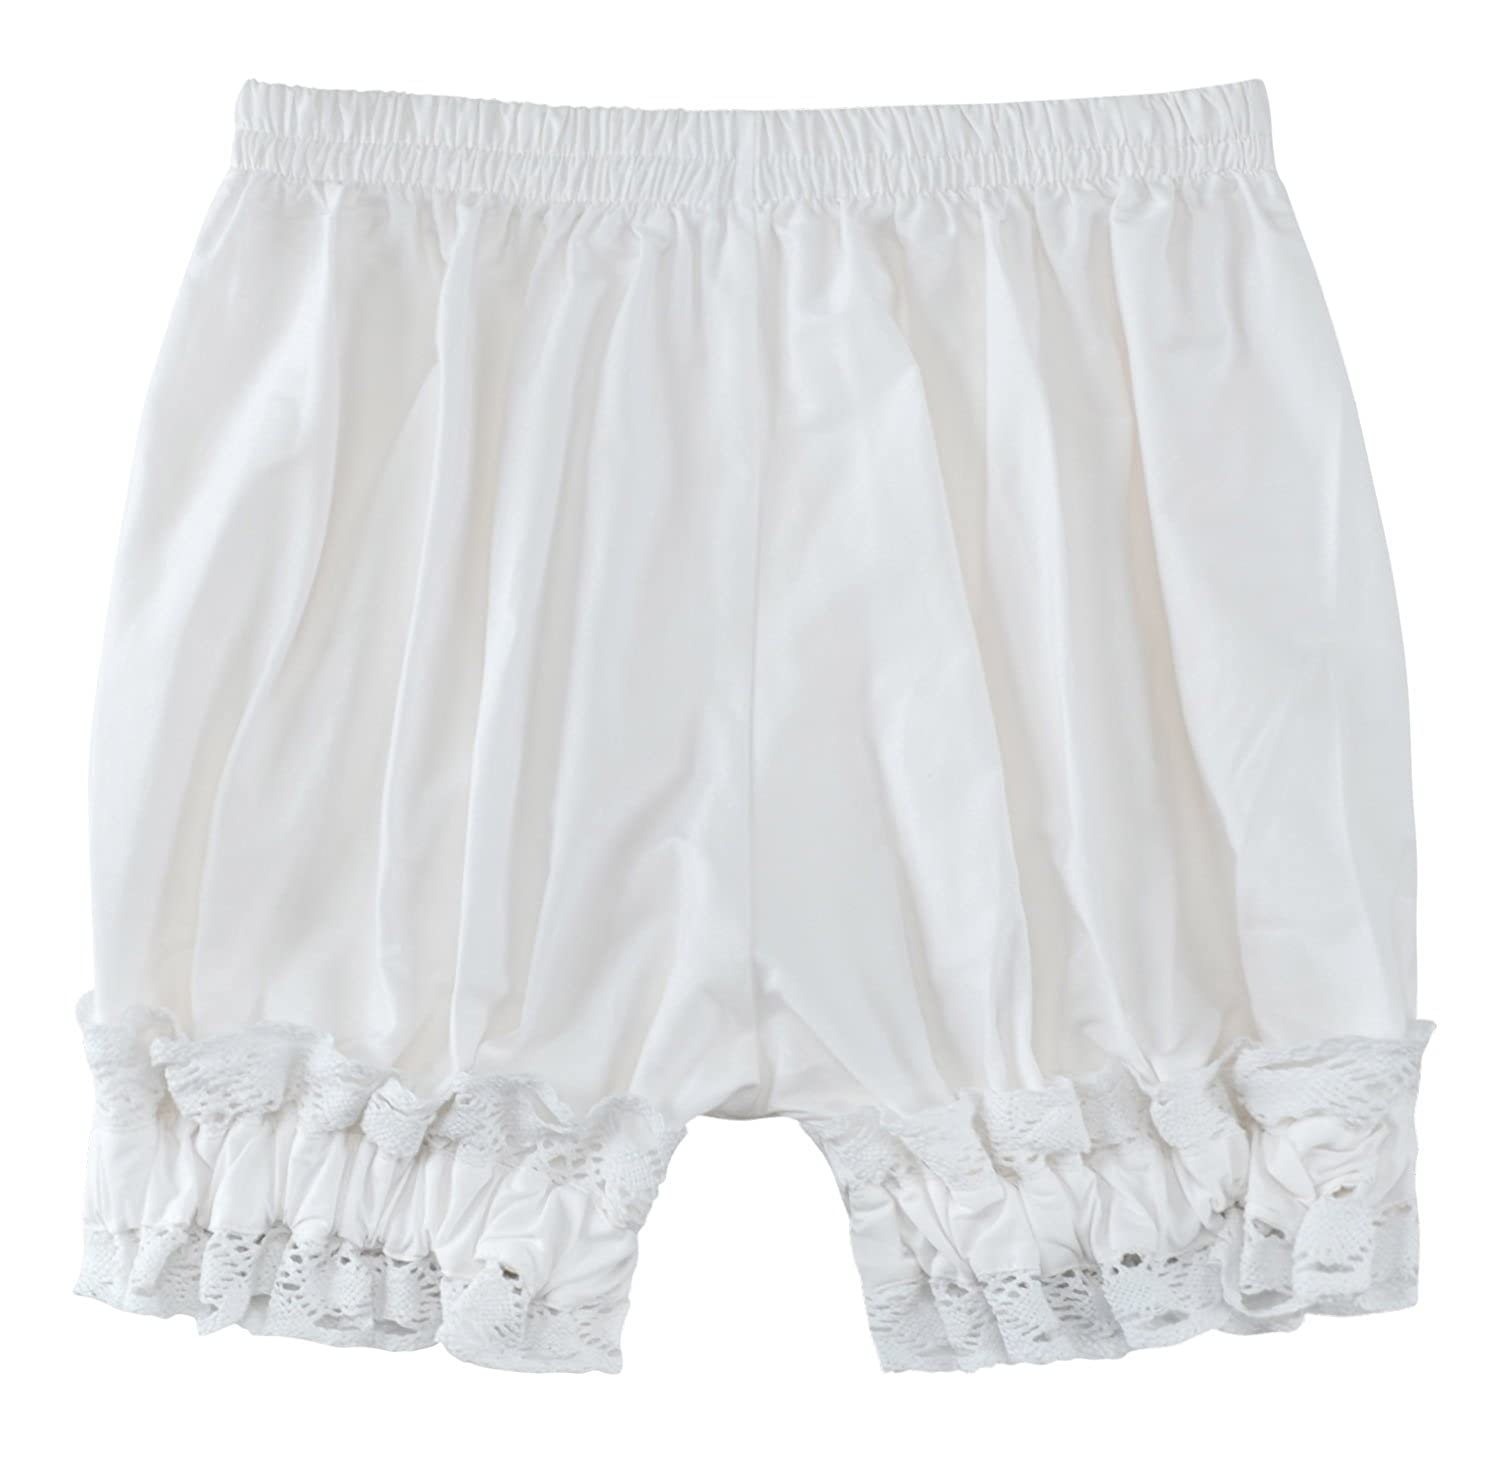 Women's Short Cotton Lace Hem Bloomers - DeluxeAdultCostumes.com